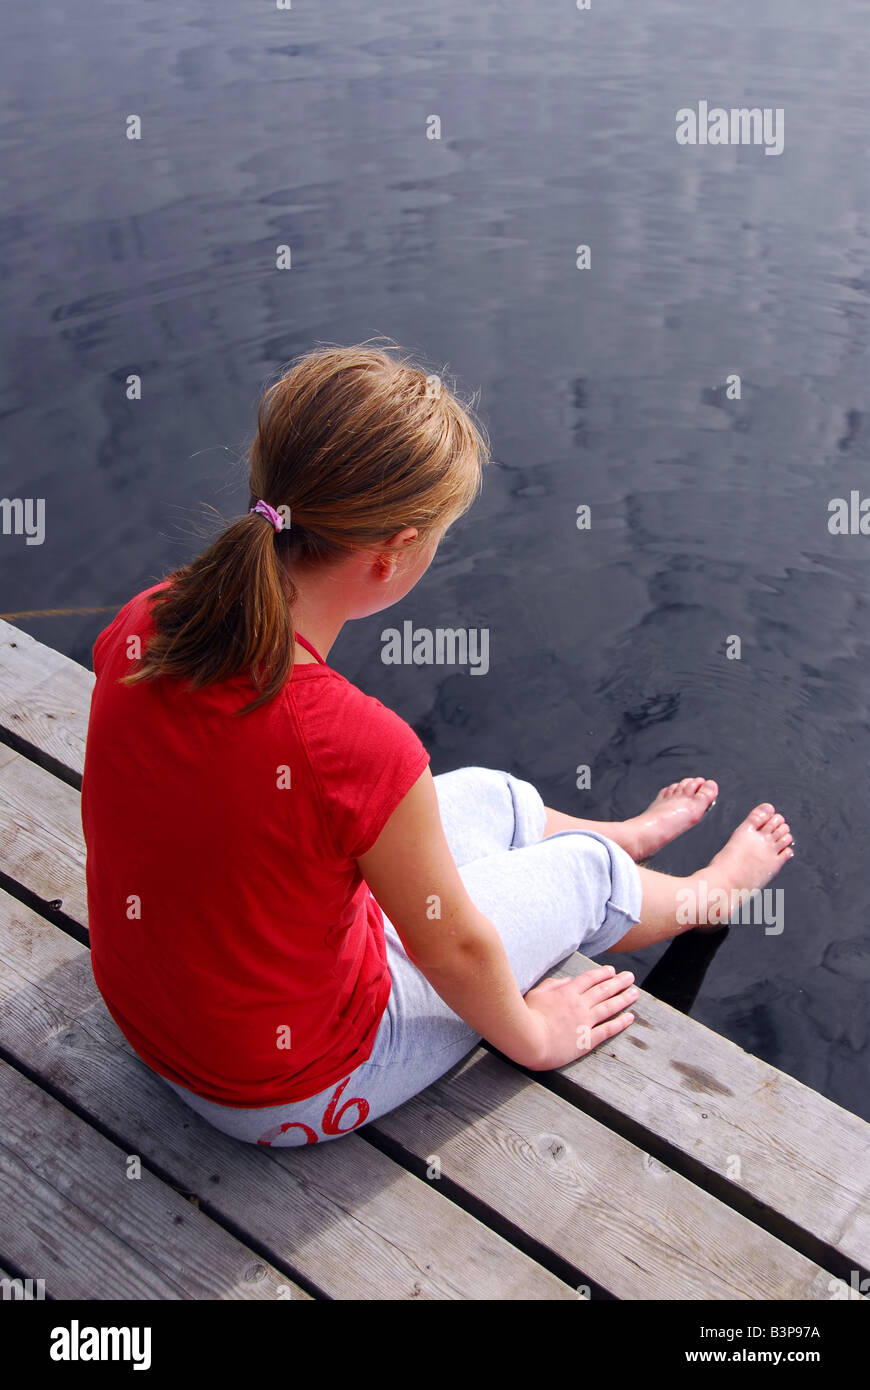 Young girl sitting on the edge of boat dock dipping her feet in water -  Stock